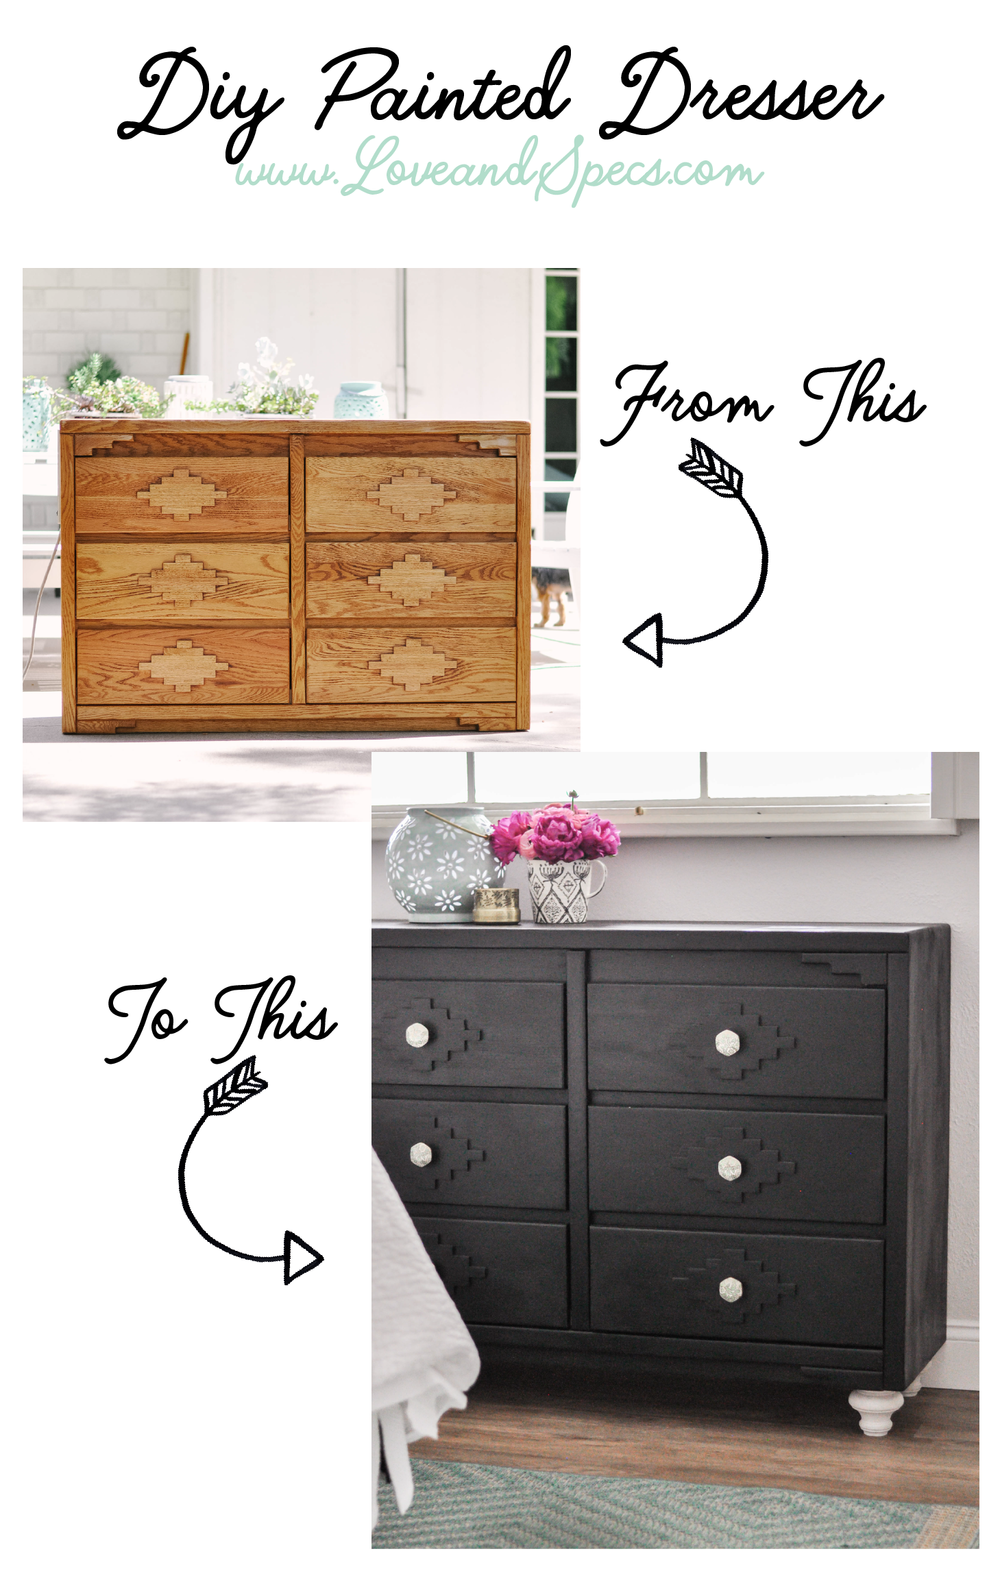 DIY-Painted-Dresser.jpeg